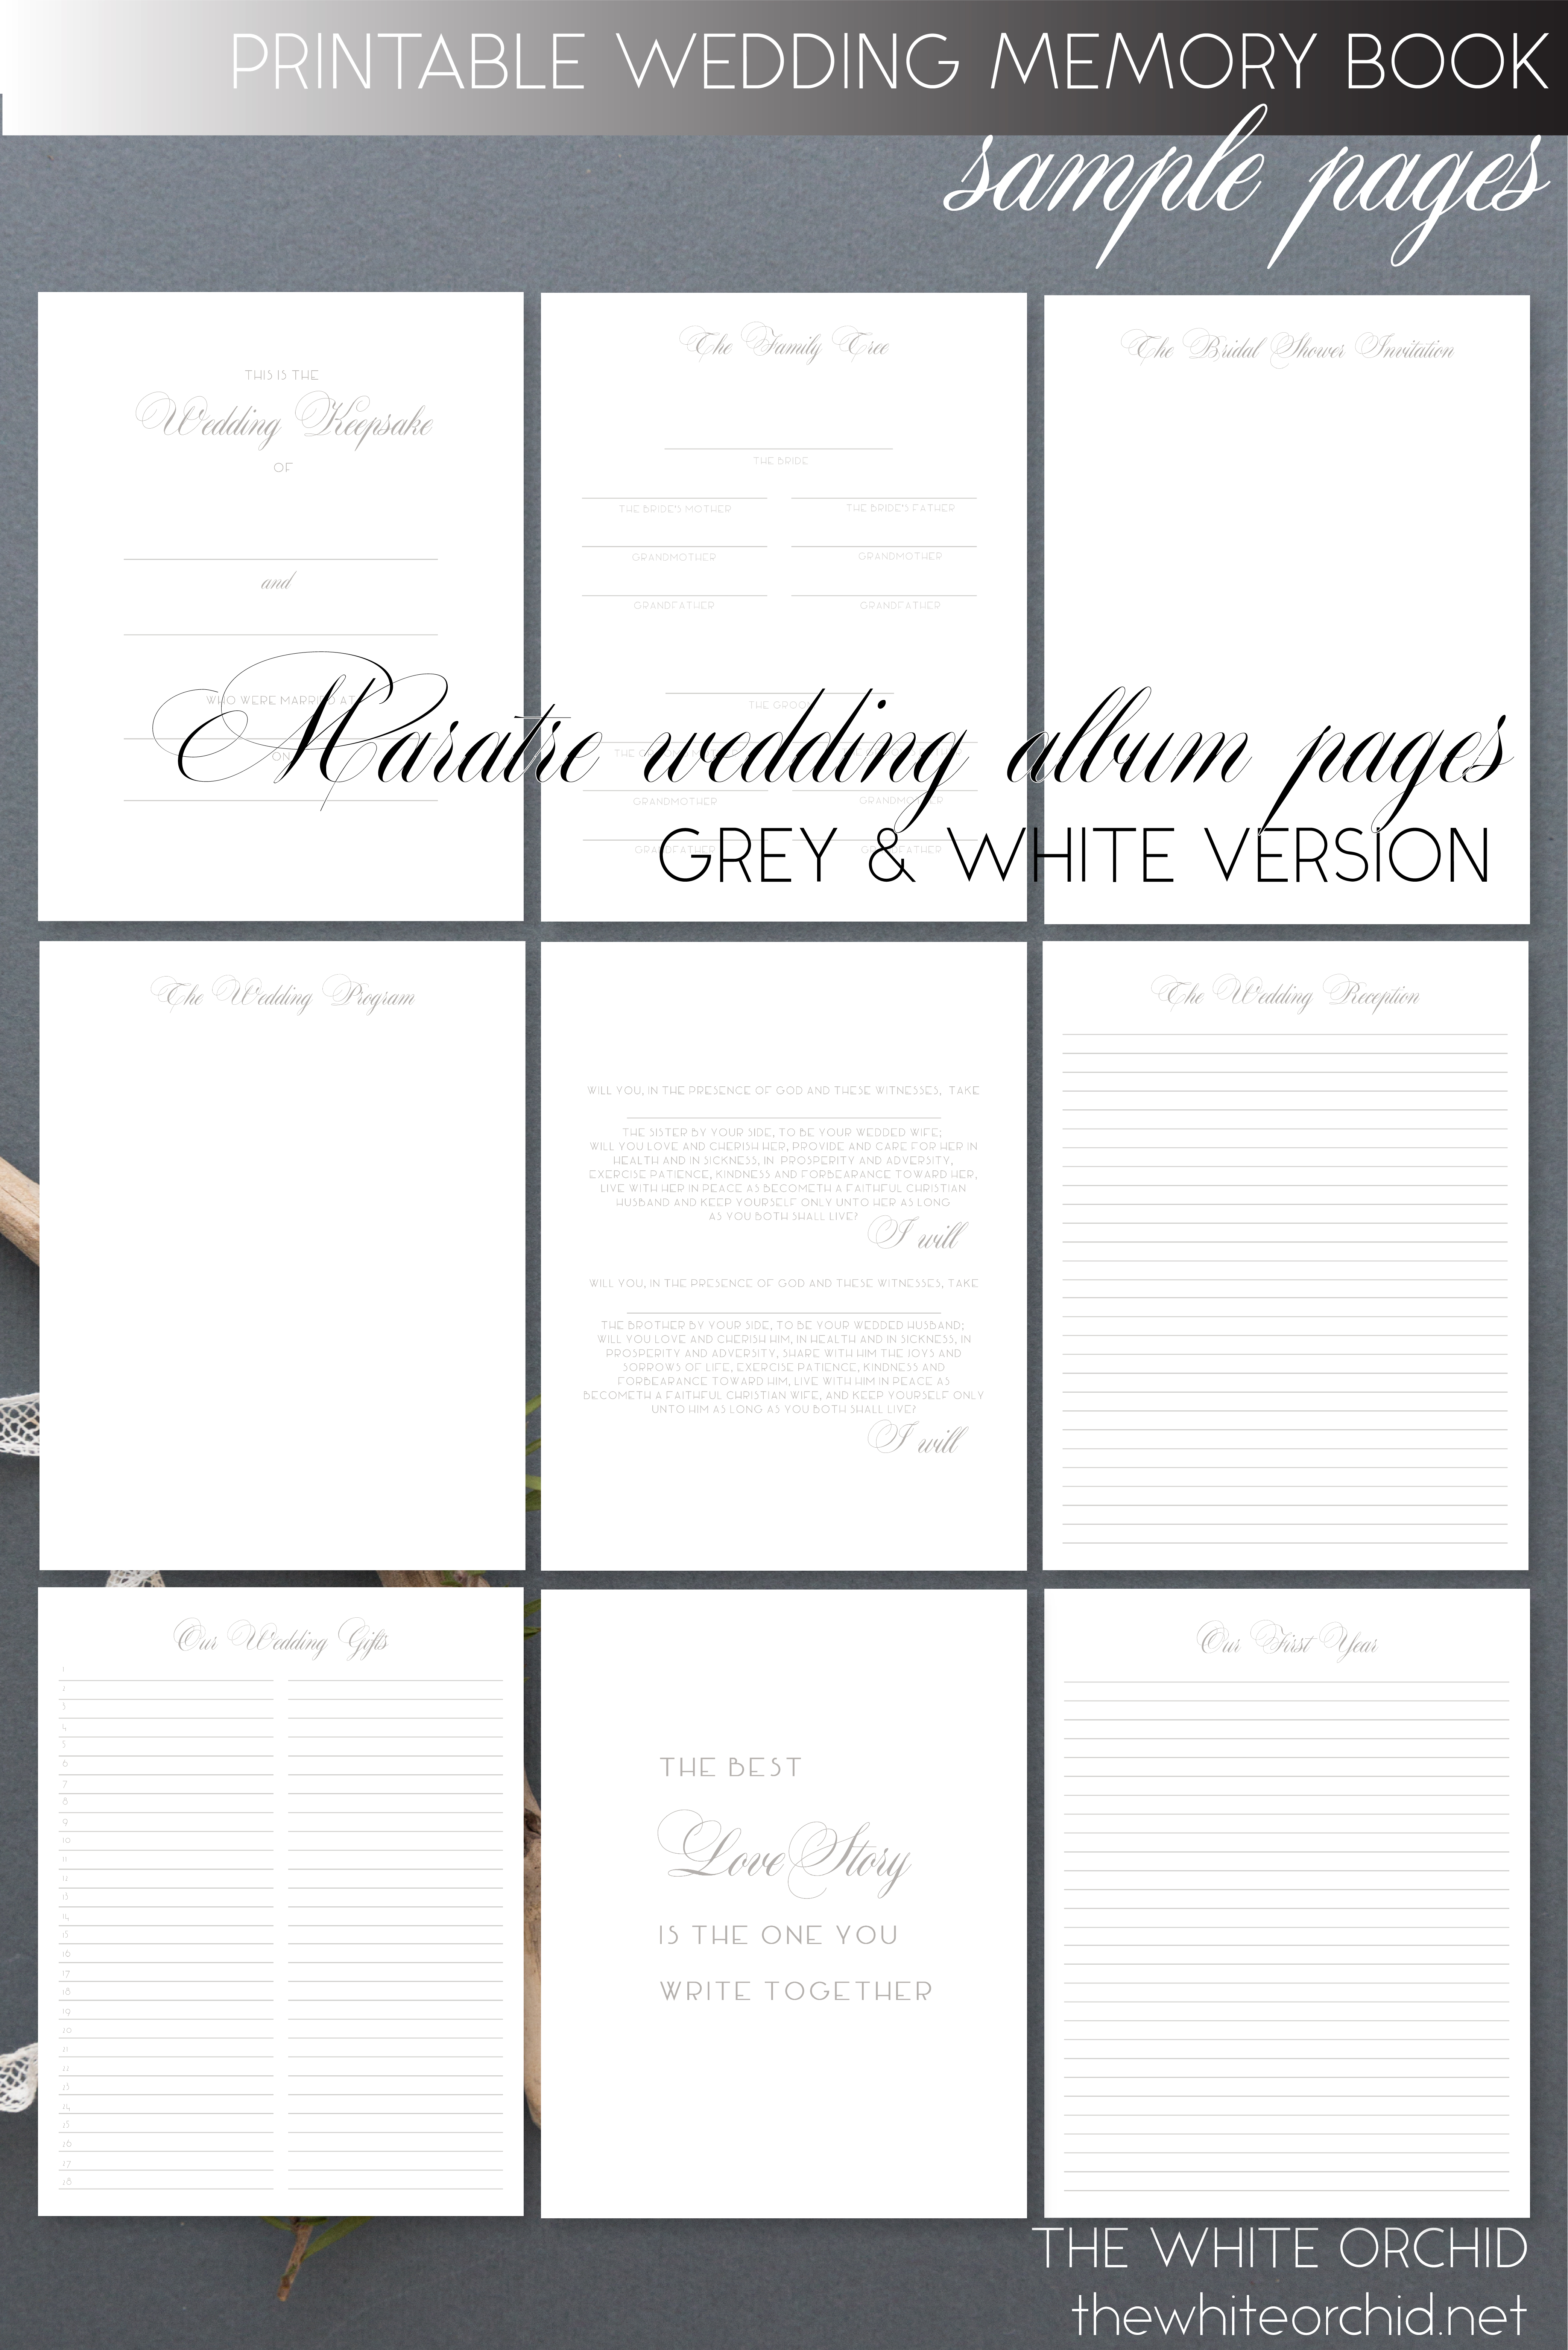 photo about Memory Book Printable known as Printable Wedding ceremony Memory e-book web pages, Maratre Wedding day Sbook Al PDF, gray white, 2-W801